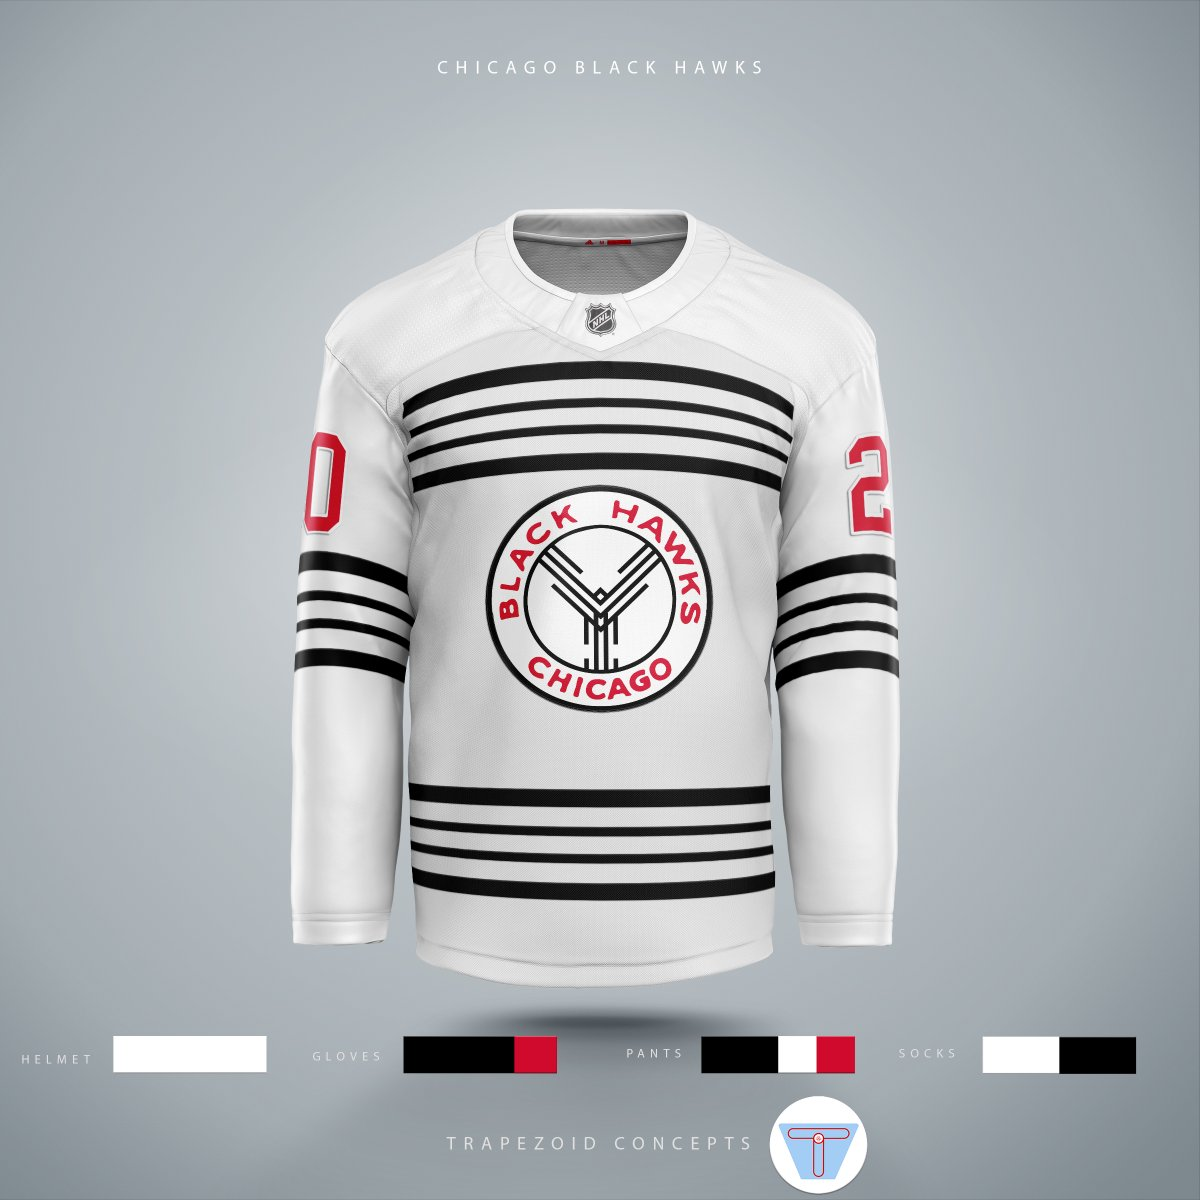 Version two of my Black Hawks concept does a much better job of using colour (specifically red) to direct the eye. #Blackhawks #hockey #NHL #hockeyjerseyconcepts #sportstemplates